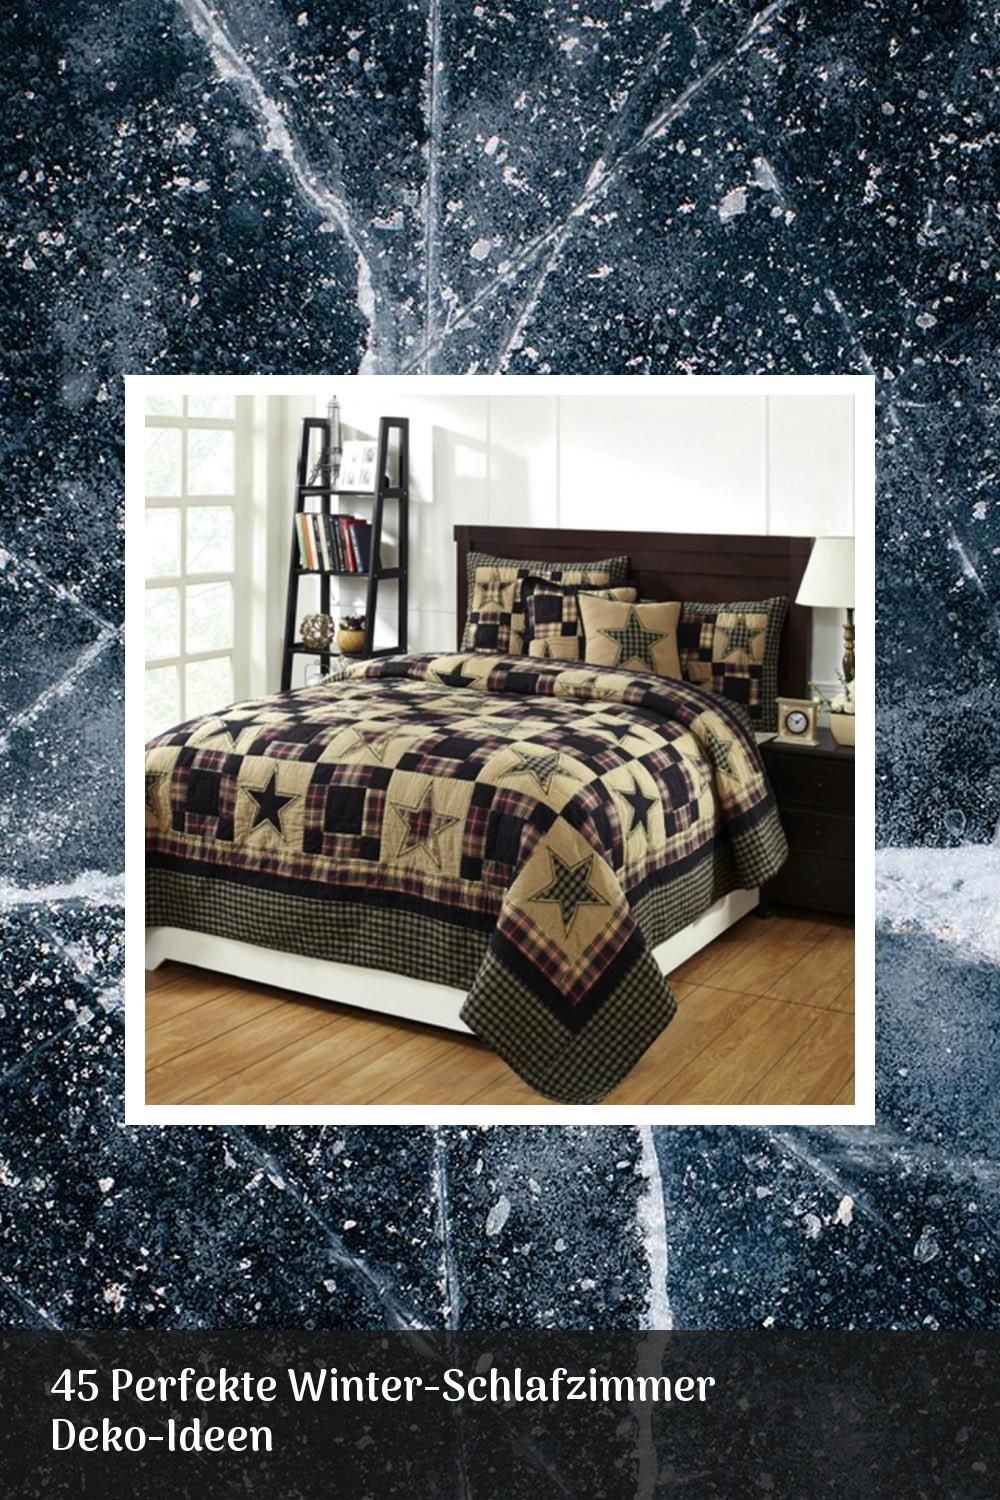 Top 45 Perfekte Winter Schlafzimmer Deko Ideen 45 Bedroom Decoration Ideas Perfect Permalink Permalinkto Schlafzimmer Deko Winter Schlafzimmer Zimmer